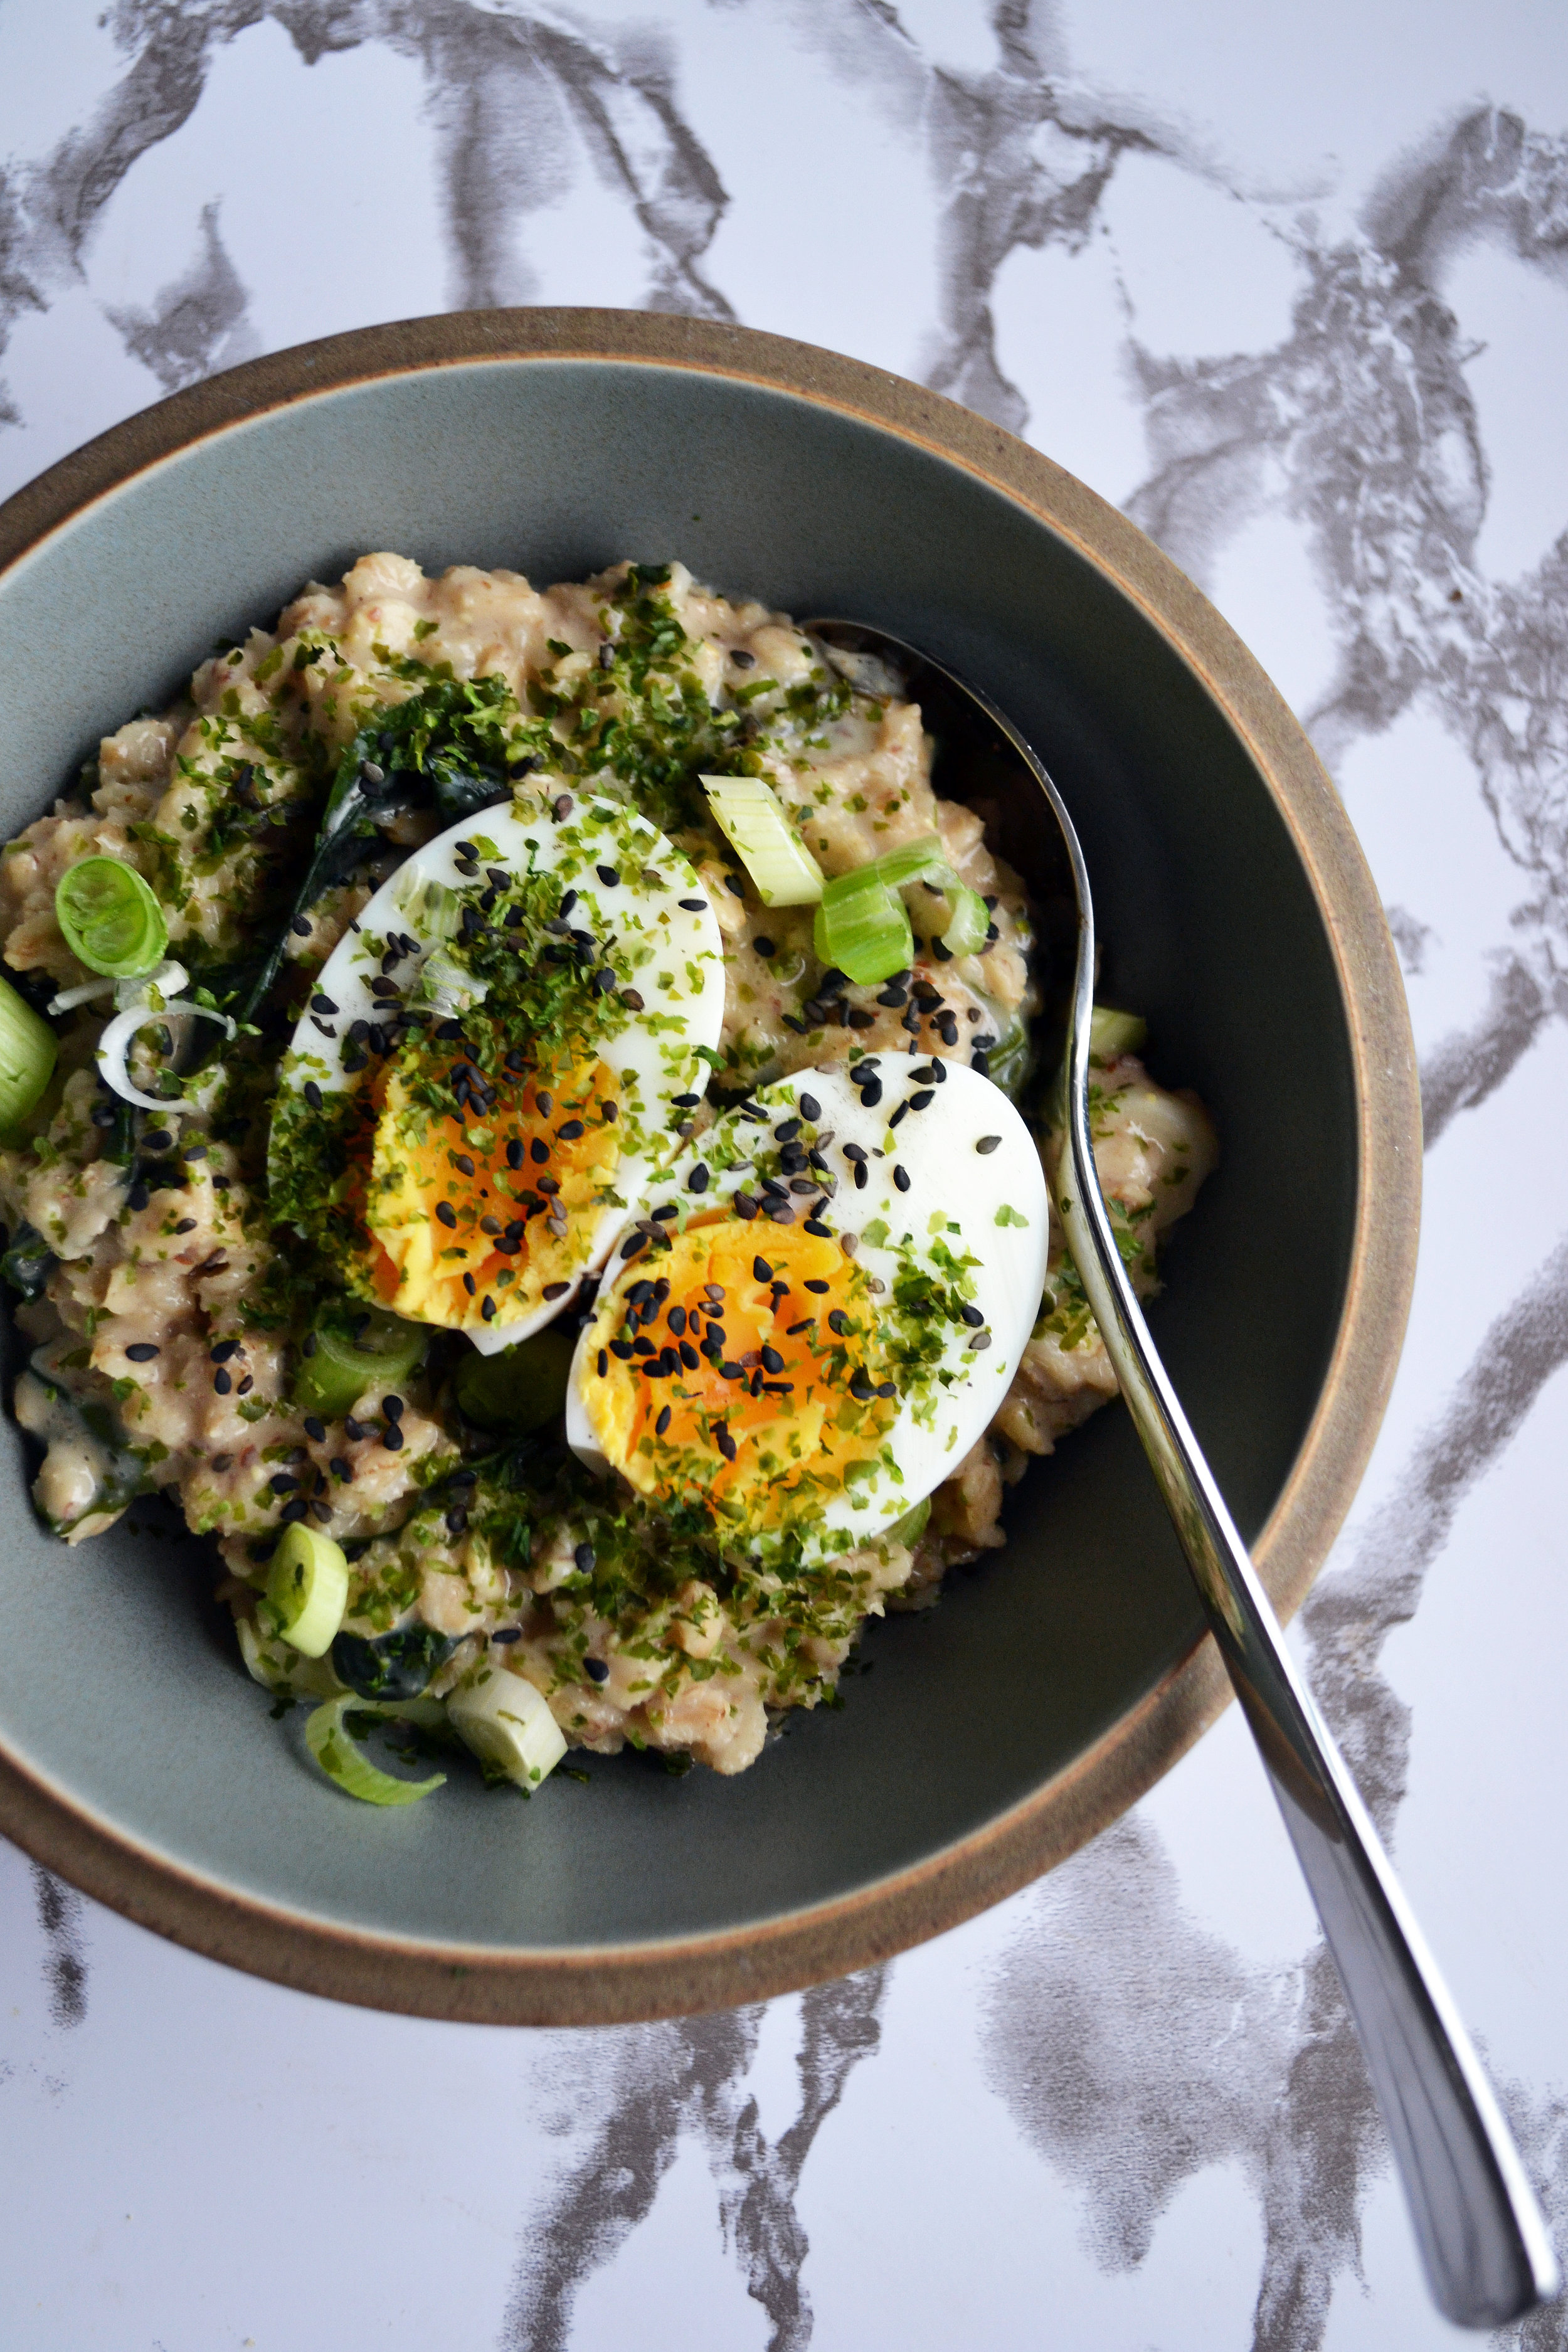 Miso and wakame oats   The Flourishing Pantry